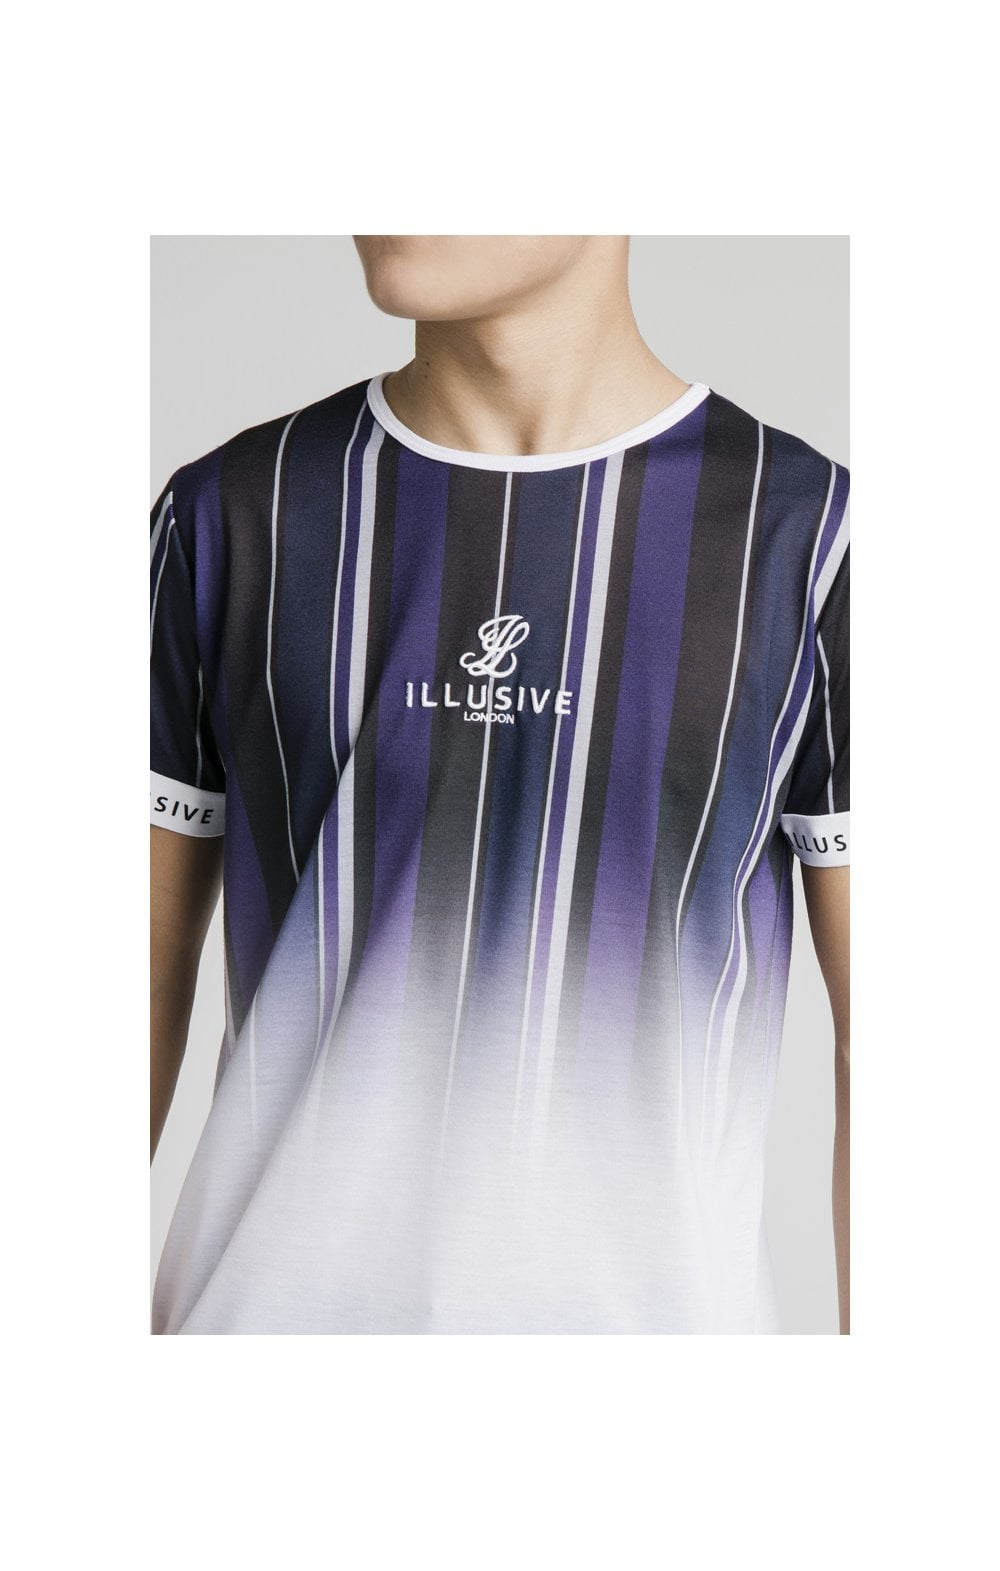 Laden Sie das Bild in den Galerie-Viewer, Illusive London Fade Stripe Tech Tee - Navy, Purple, Grey & White